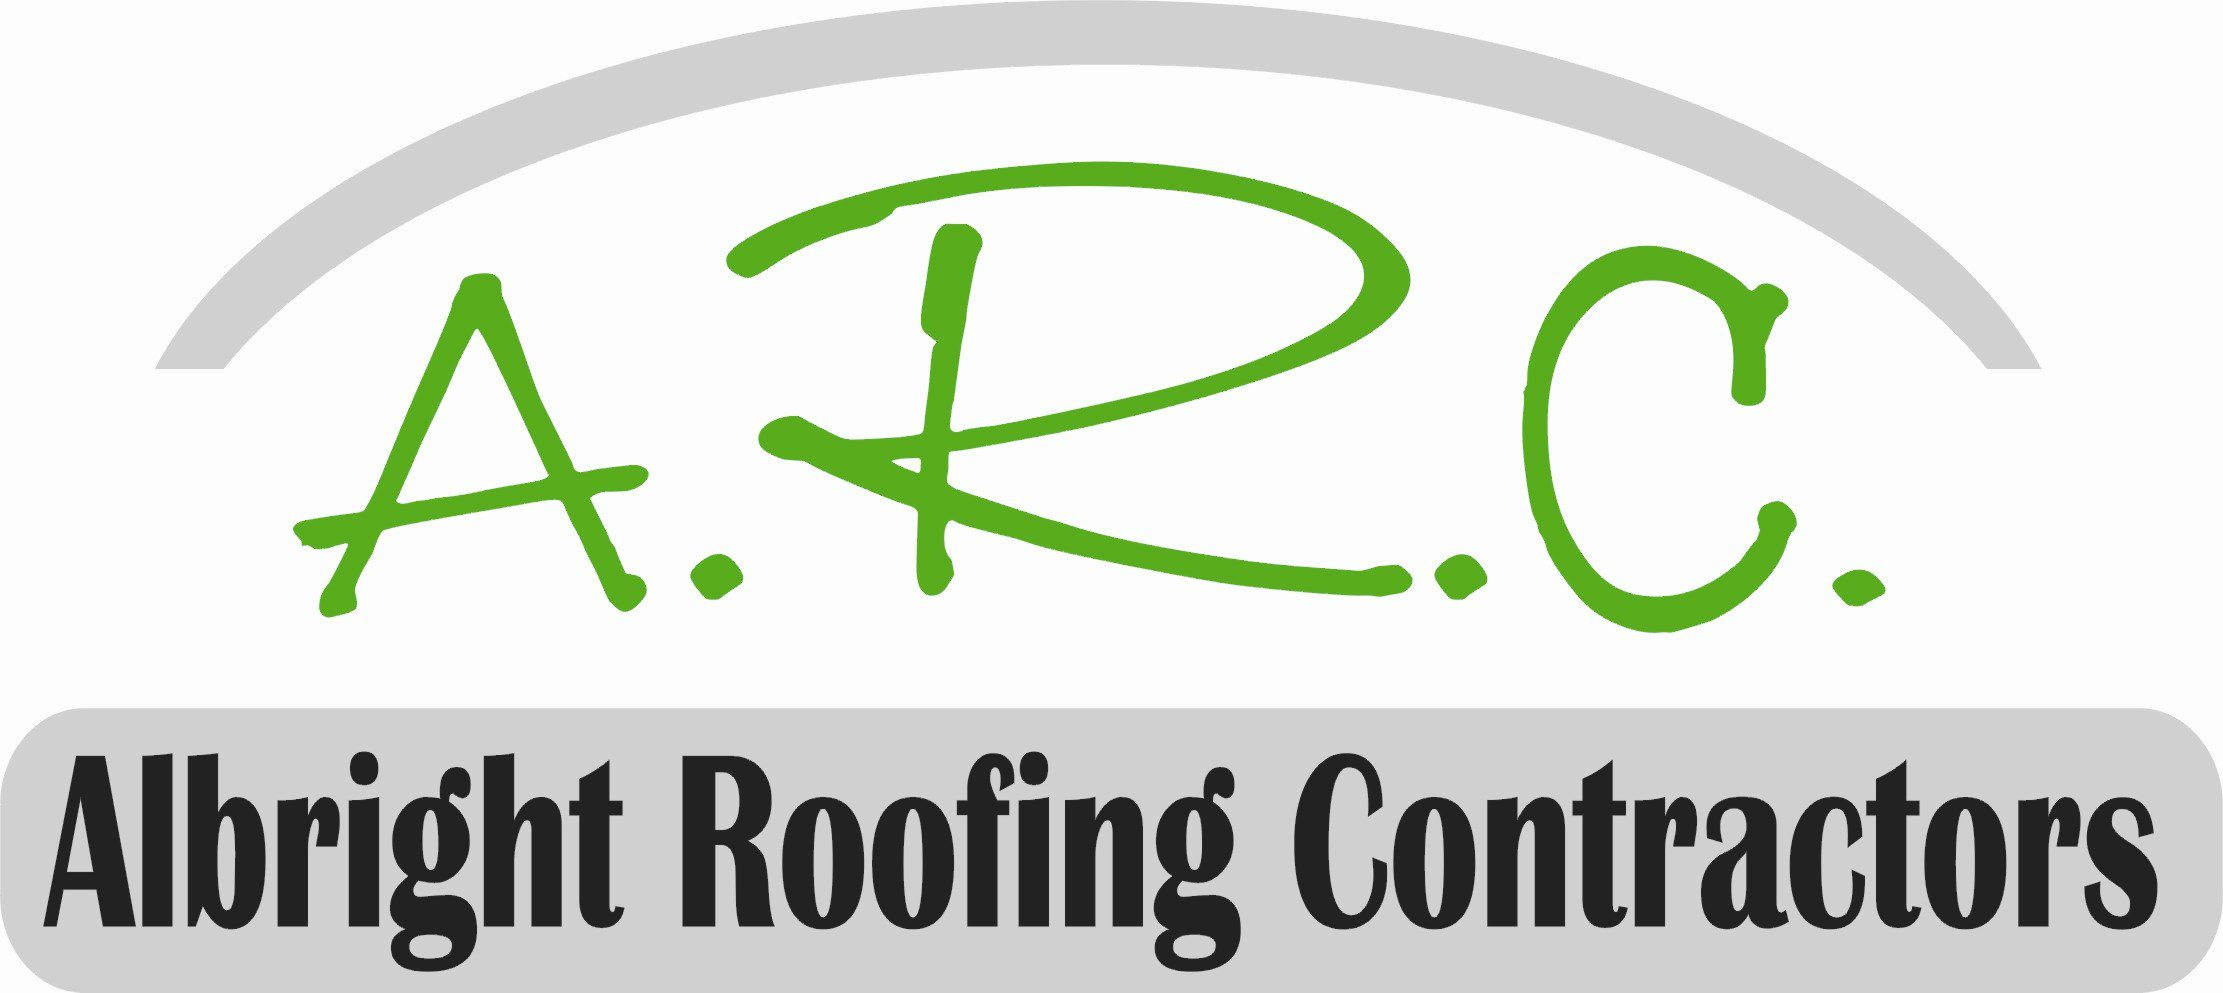 Albright Roofing Contractors – Shielding Your Home From The